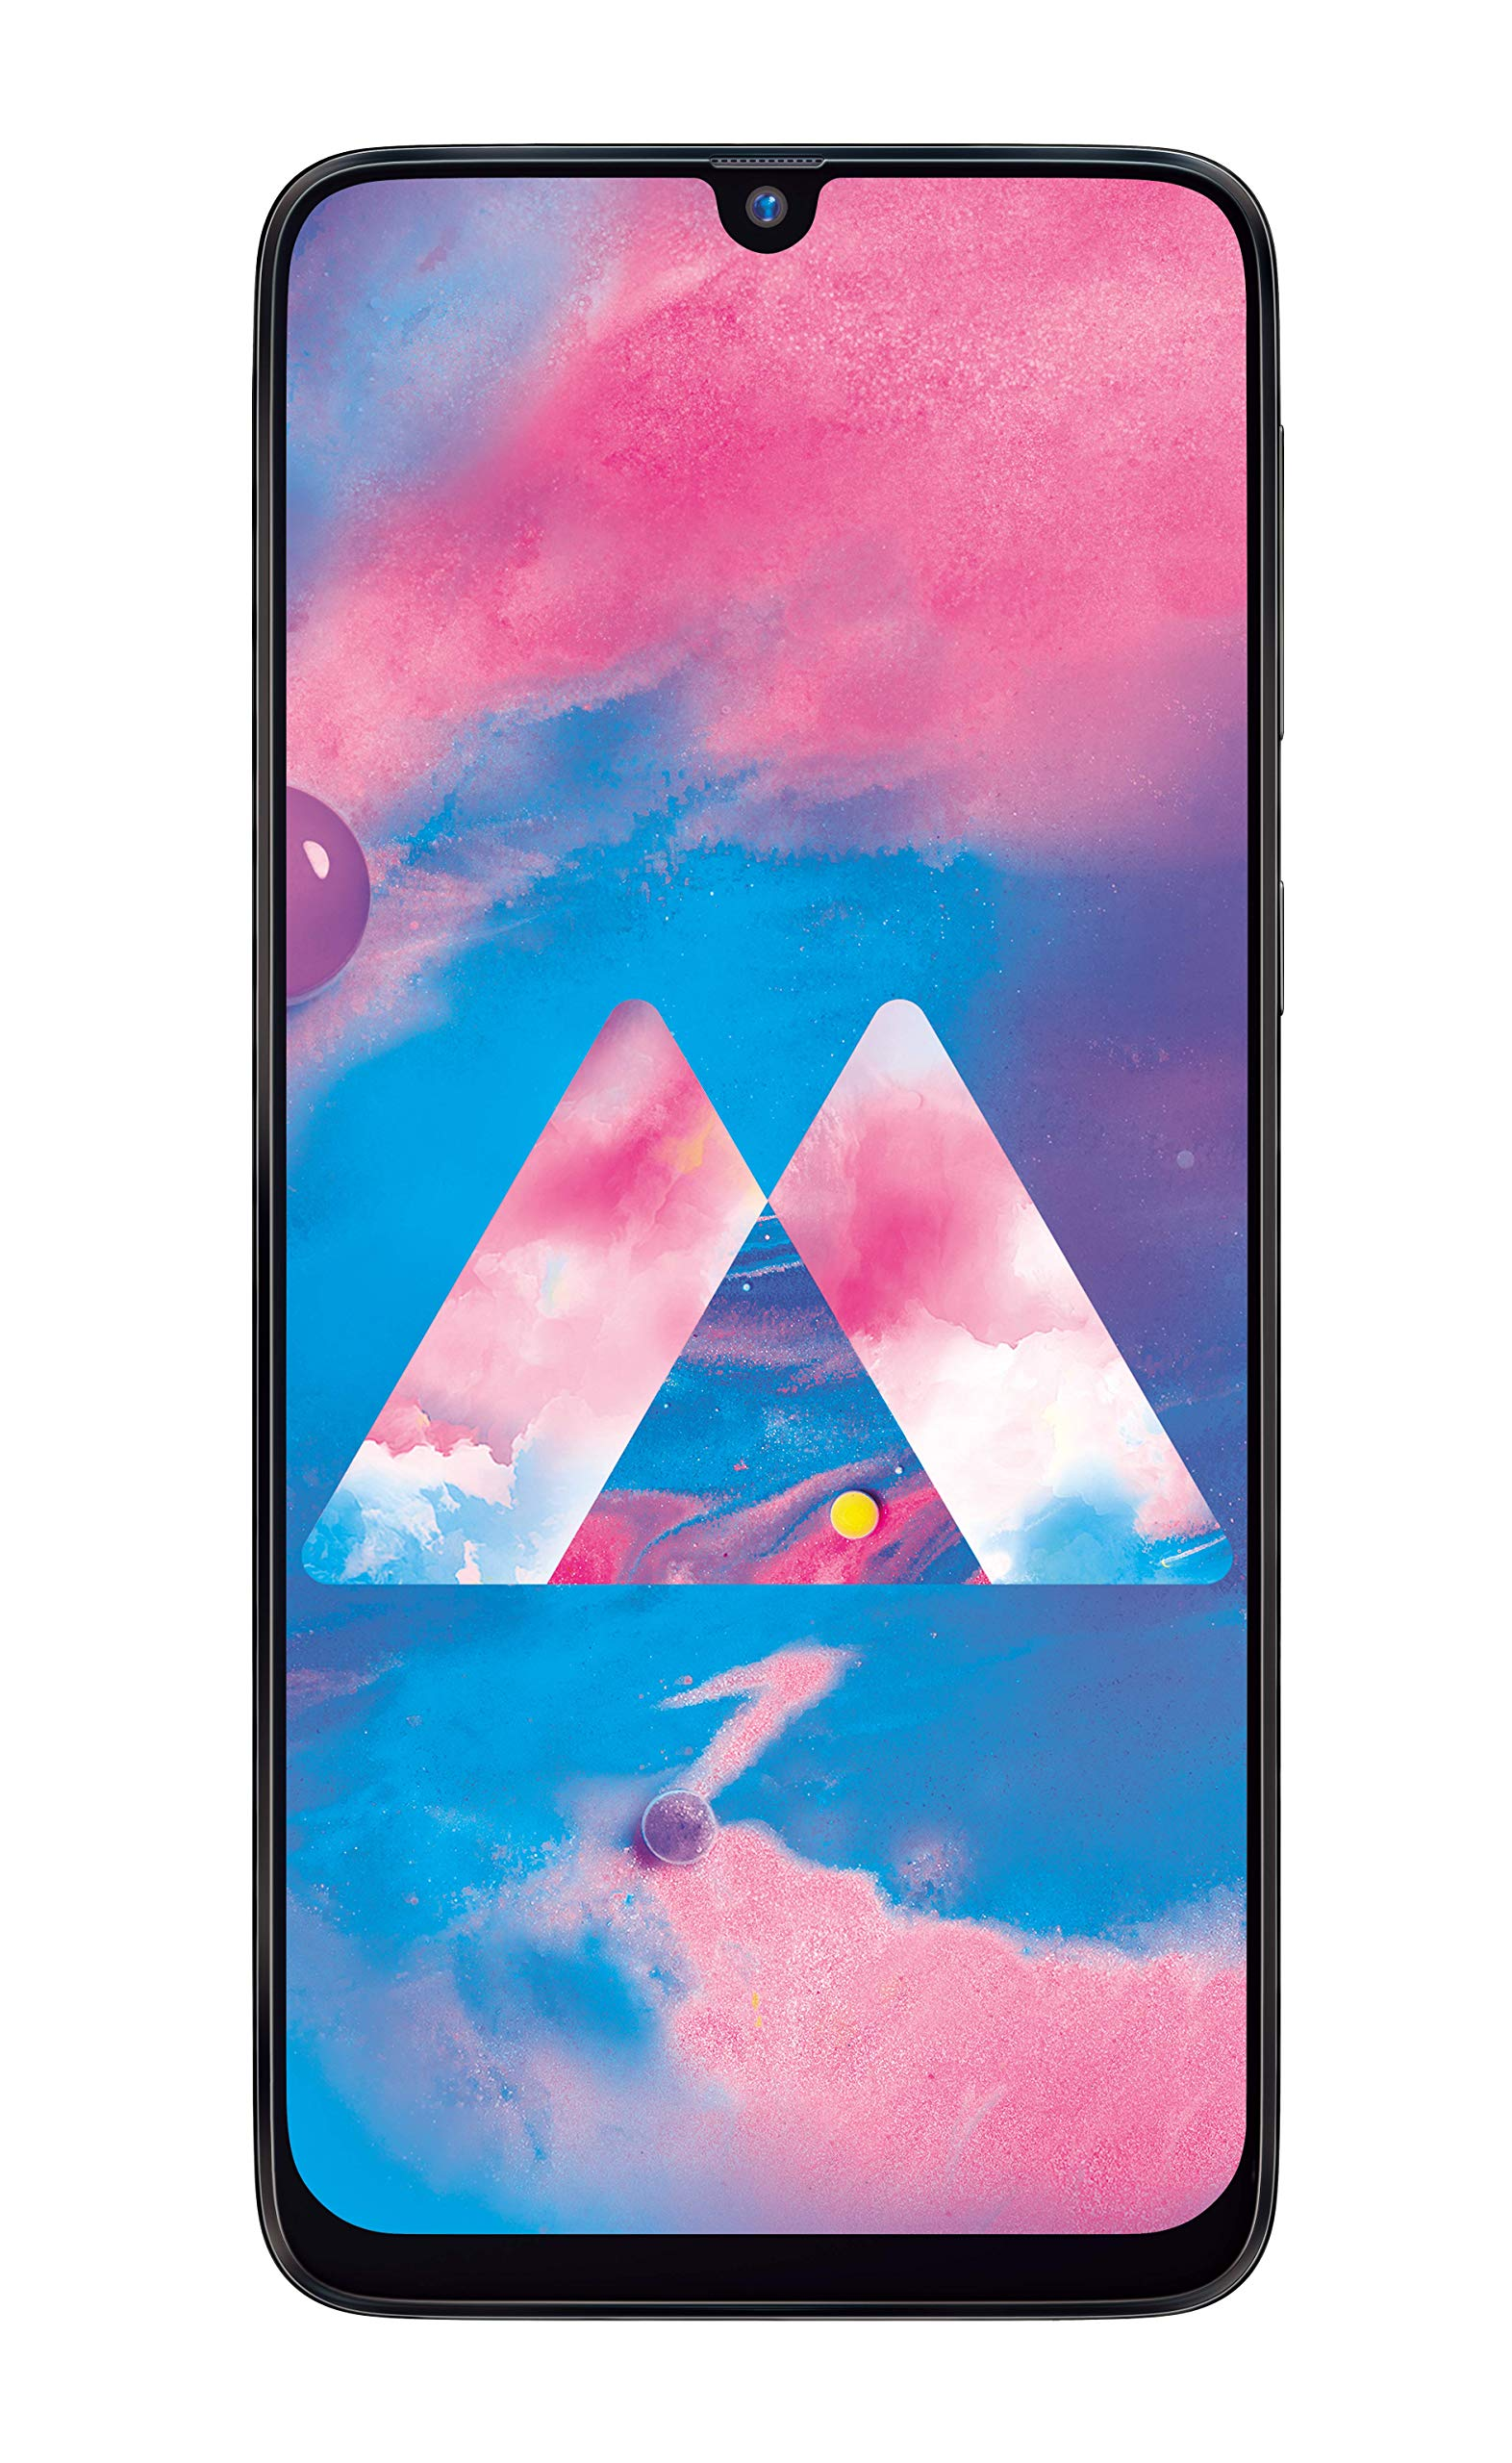 Samsung Galaxy M30 (Stainless Black, 5000mAh Battery, Super AMOLED Display, 3GB RAM, 32GB Storage) product image